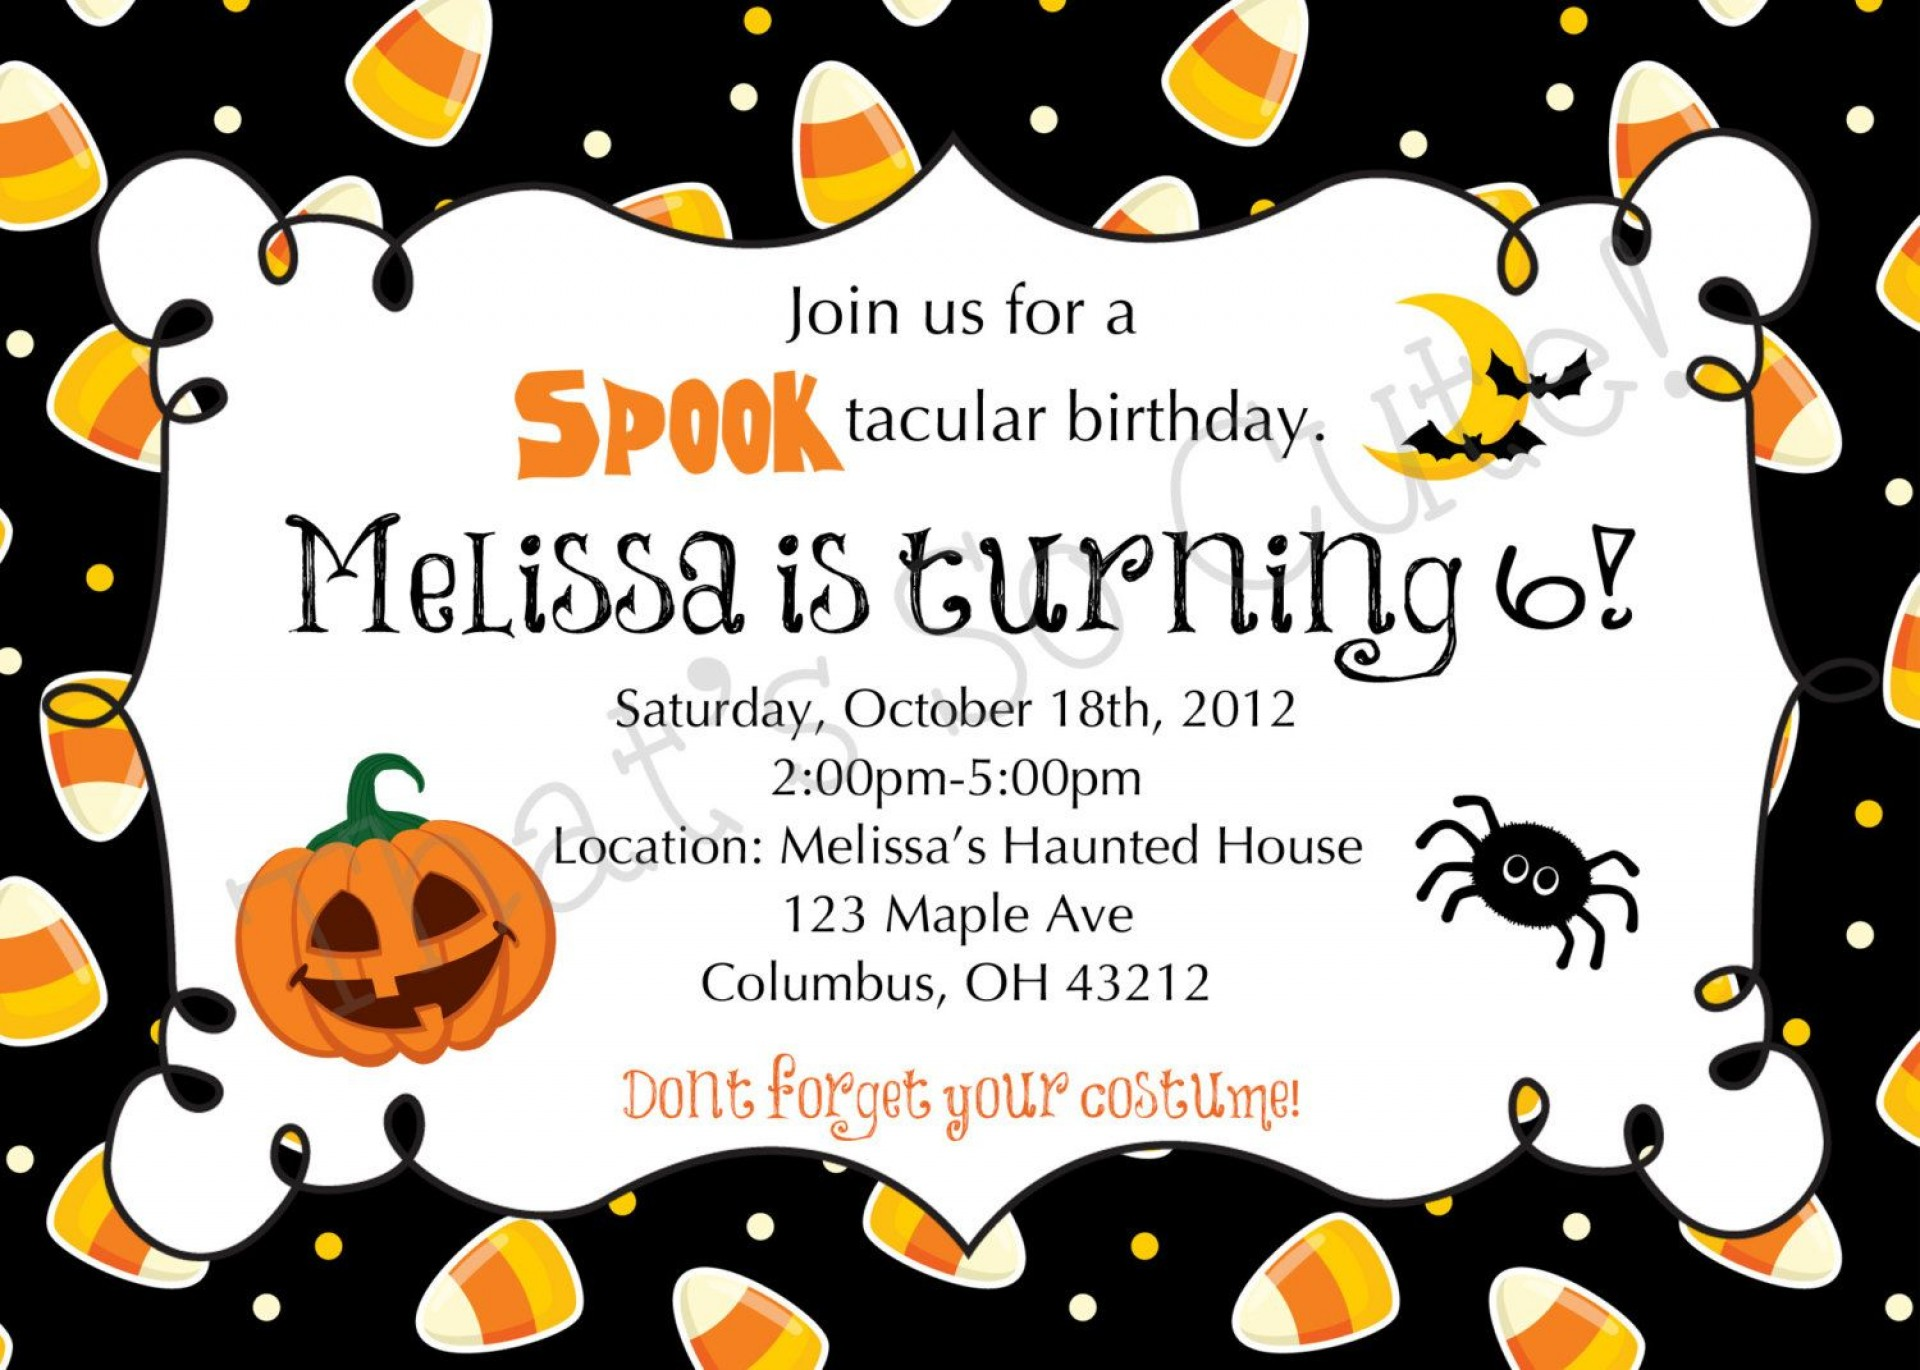 003 Imposing Free Halloween Party Invitation Template Inspiration  Printable Birthday For Word Download1920